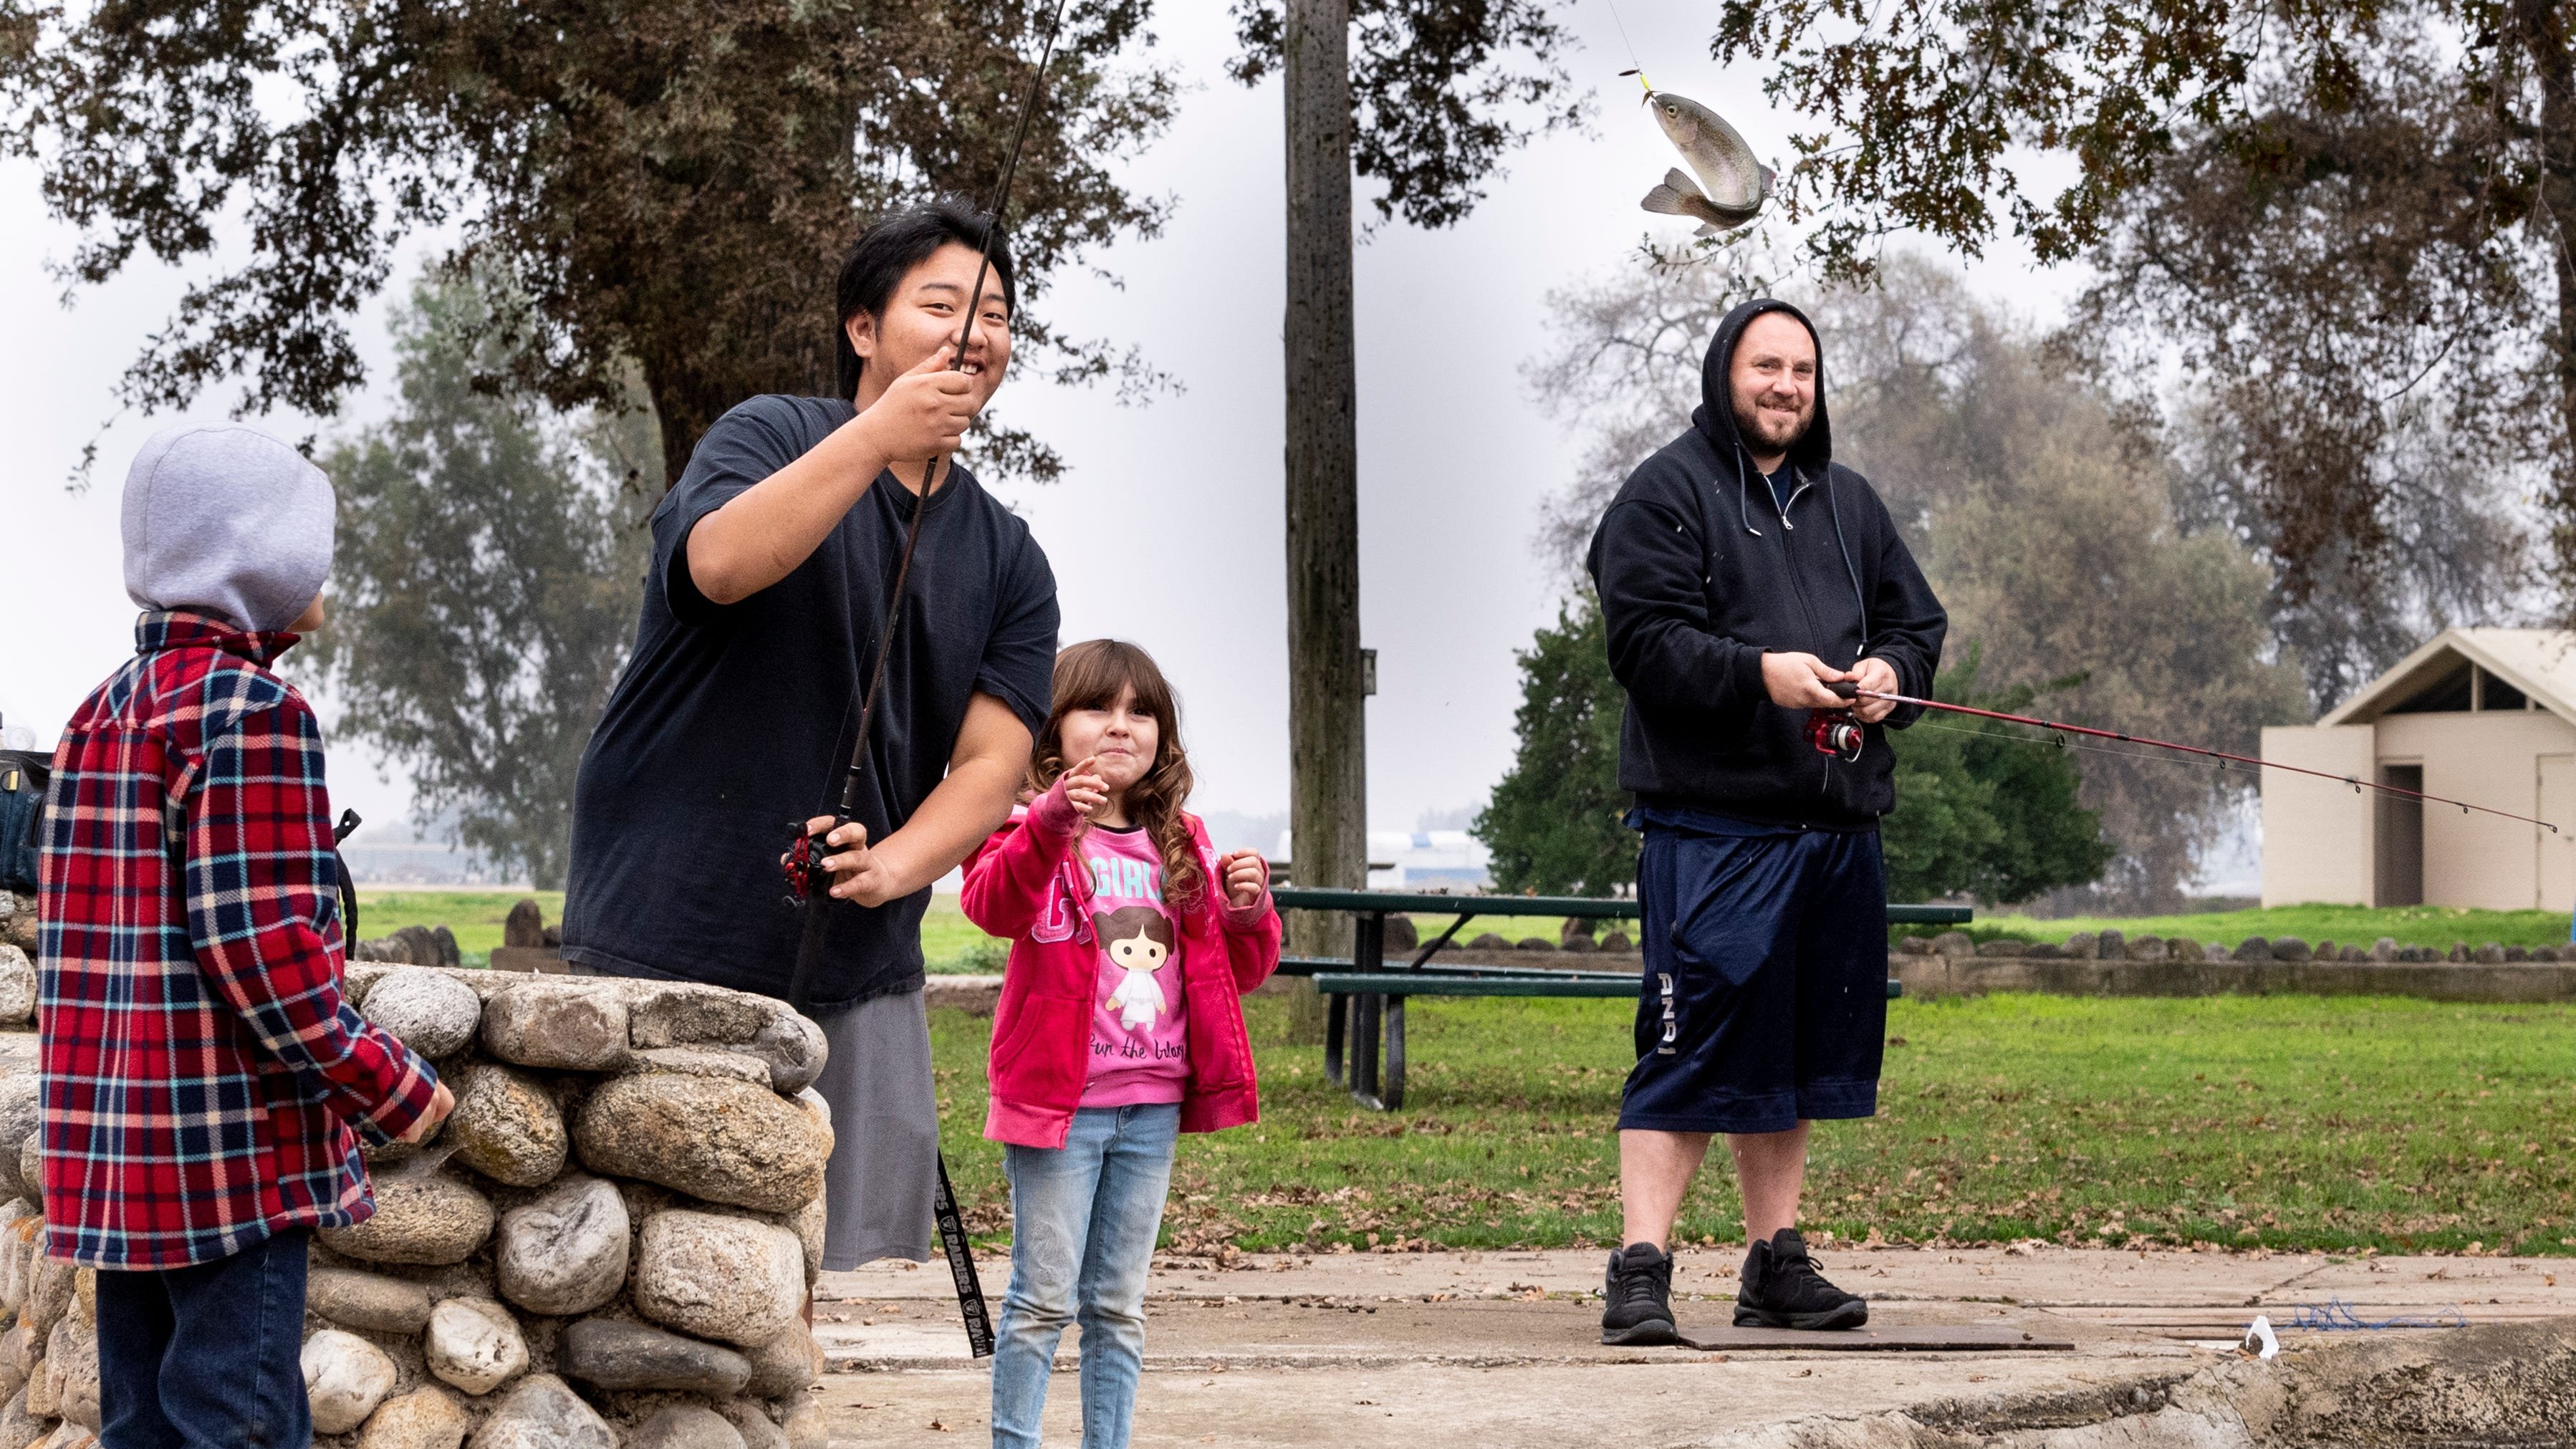 Nathen Hughes, right, and his children Shyleigh Hughes, 6, and Harley Hughes, 8, watch Johnny See catch the first  fish after 500 pounds of rainbow trout were released into the pond at Mooney Grove Park on Tuesday, December 11, 2018. They range in size from about 3/4 pound to 1 1/2 pounds. The pond will be restocked every two weeks until March.